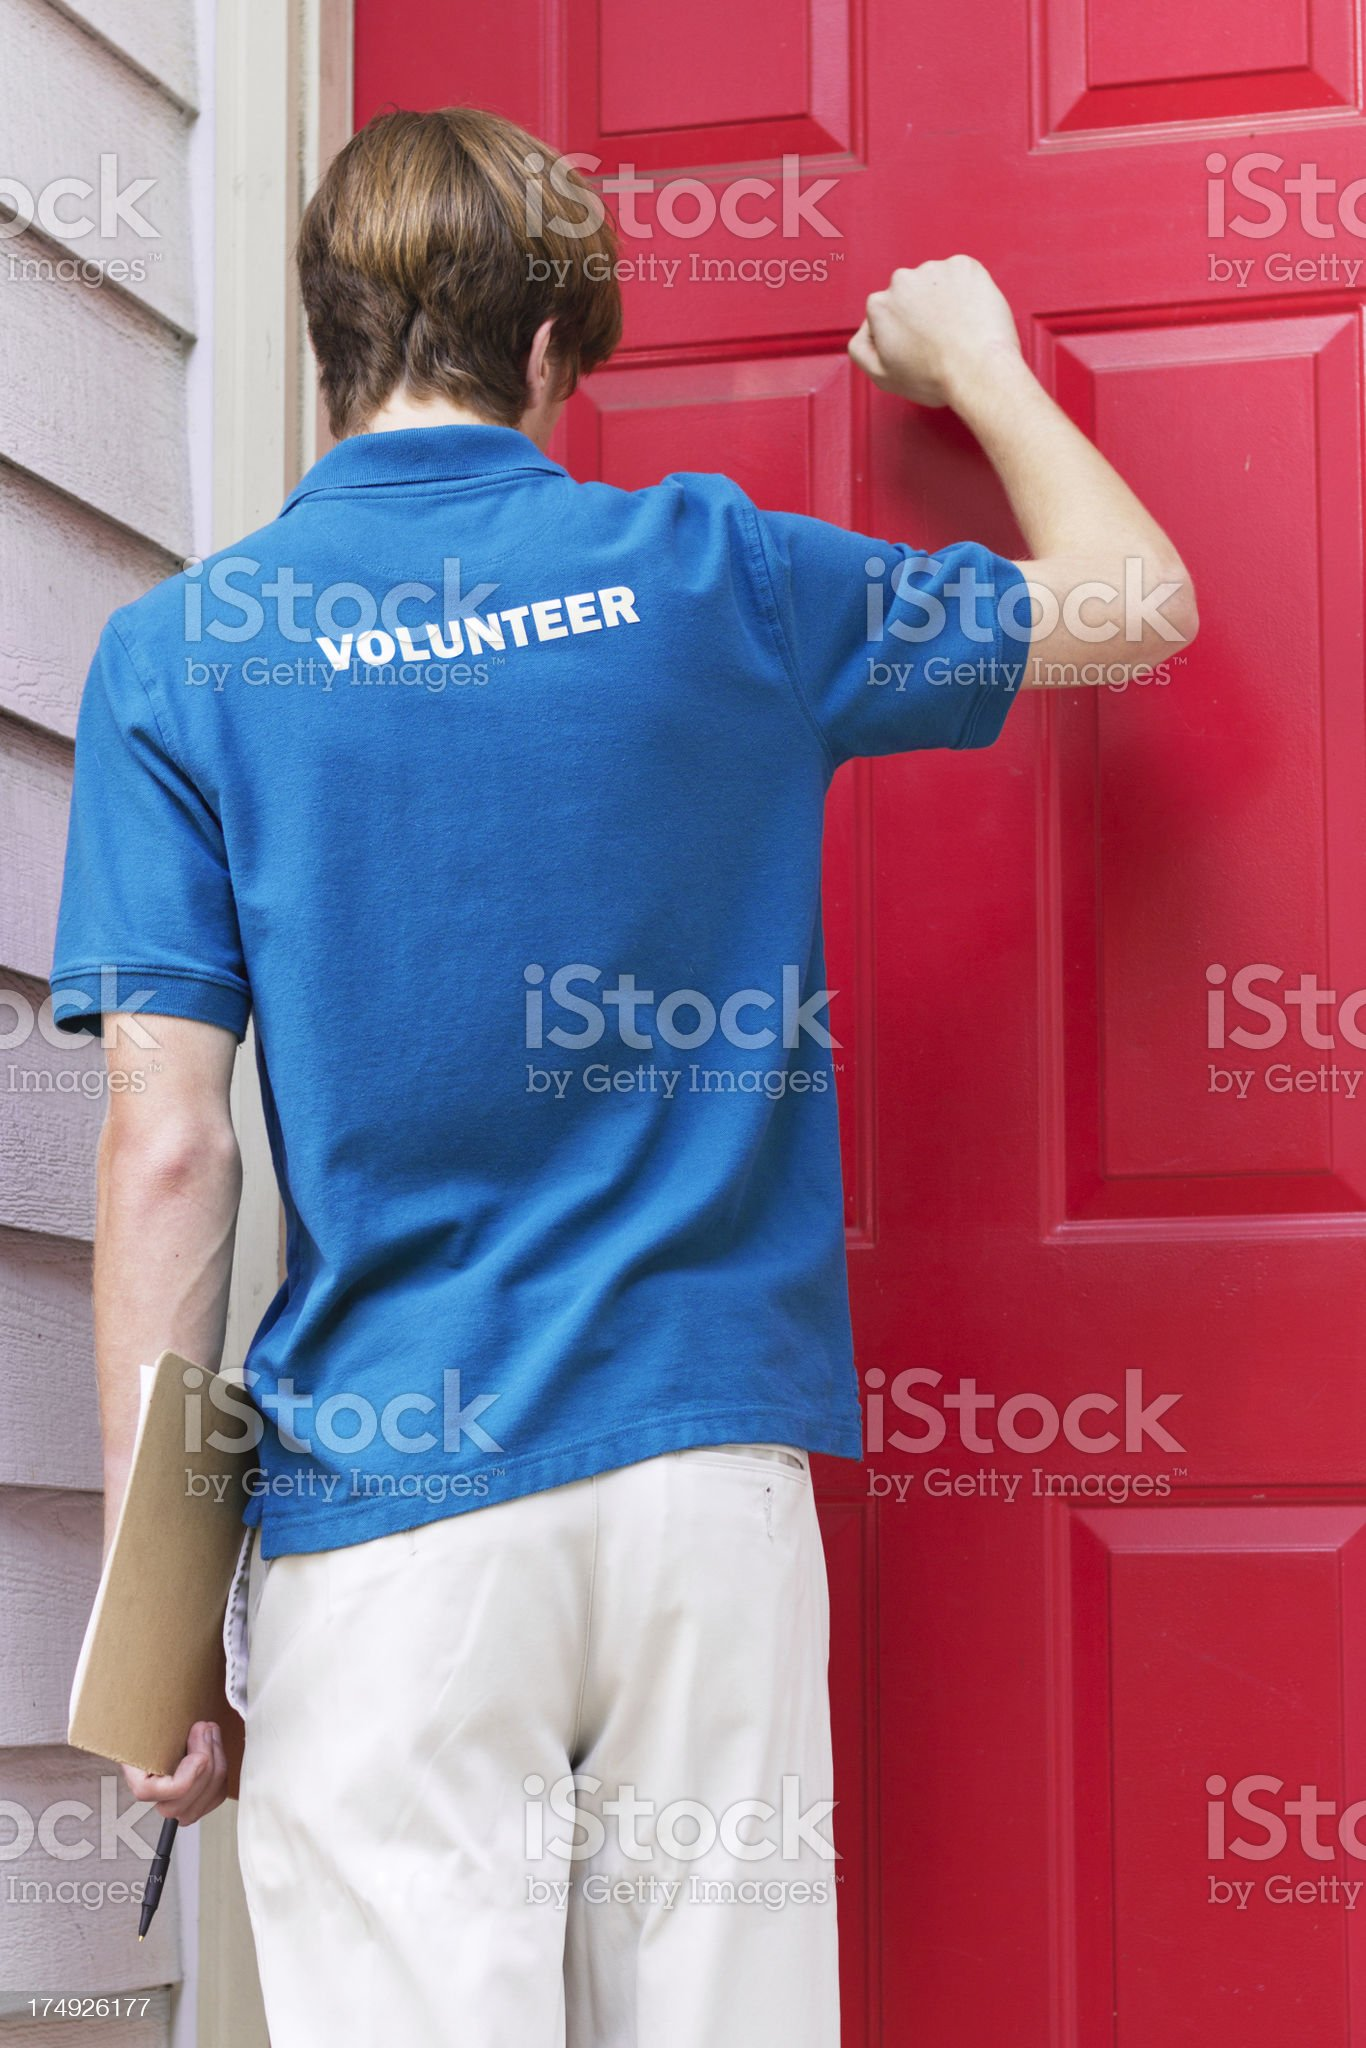 Teenage Volunteer Petitioning or Canvassing royalty-free stock photo